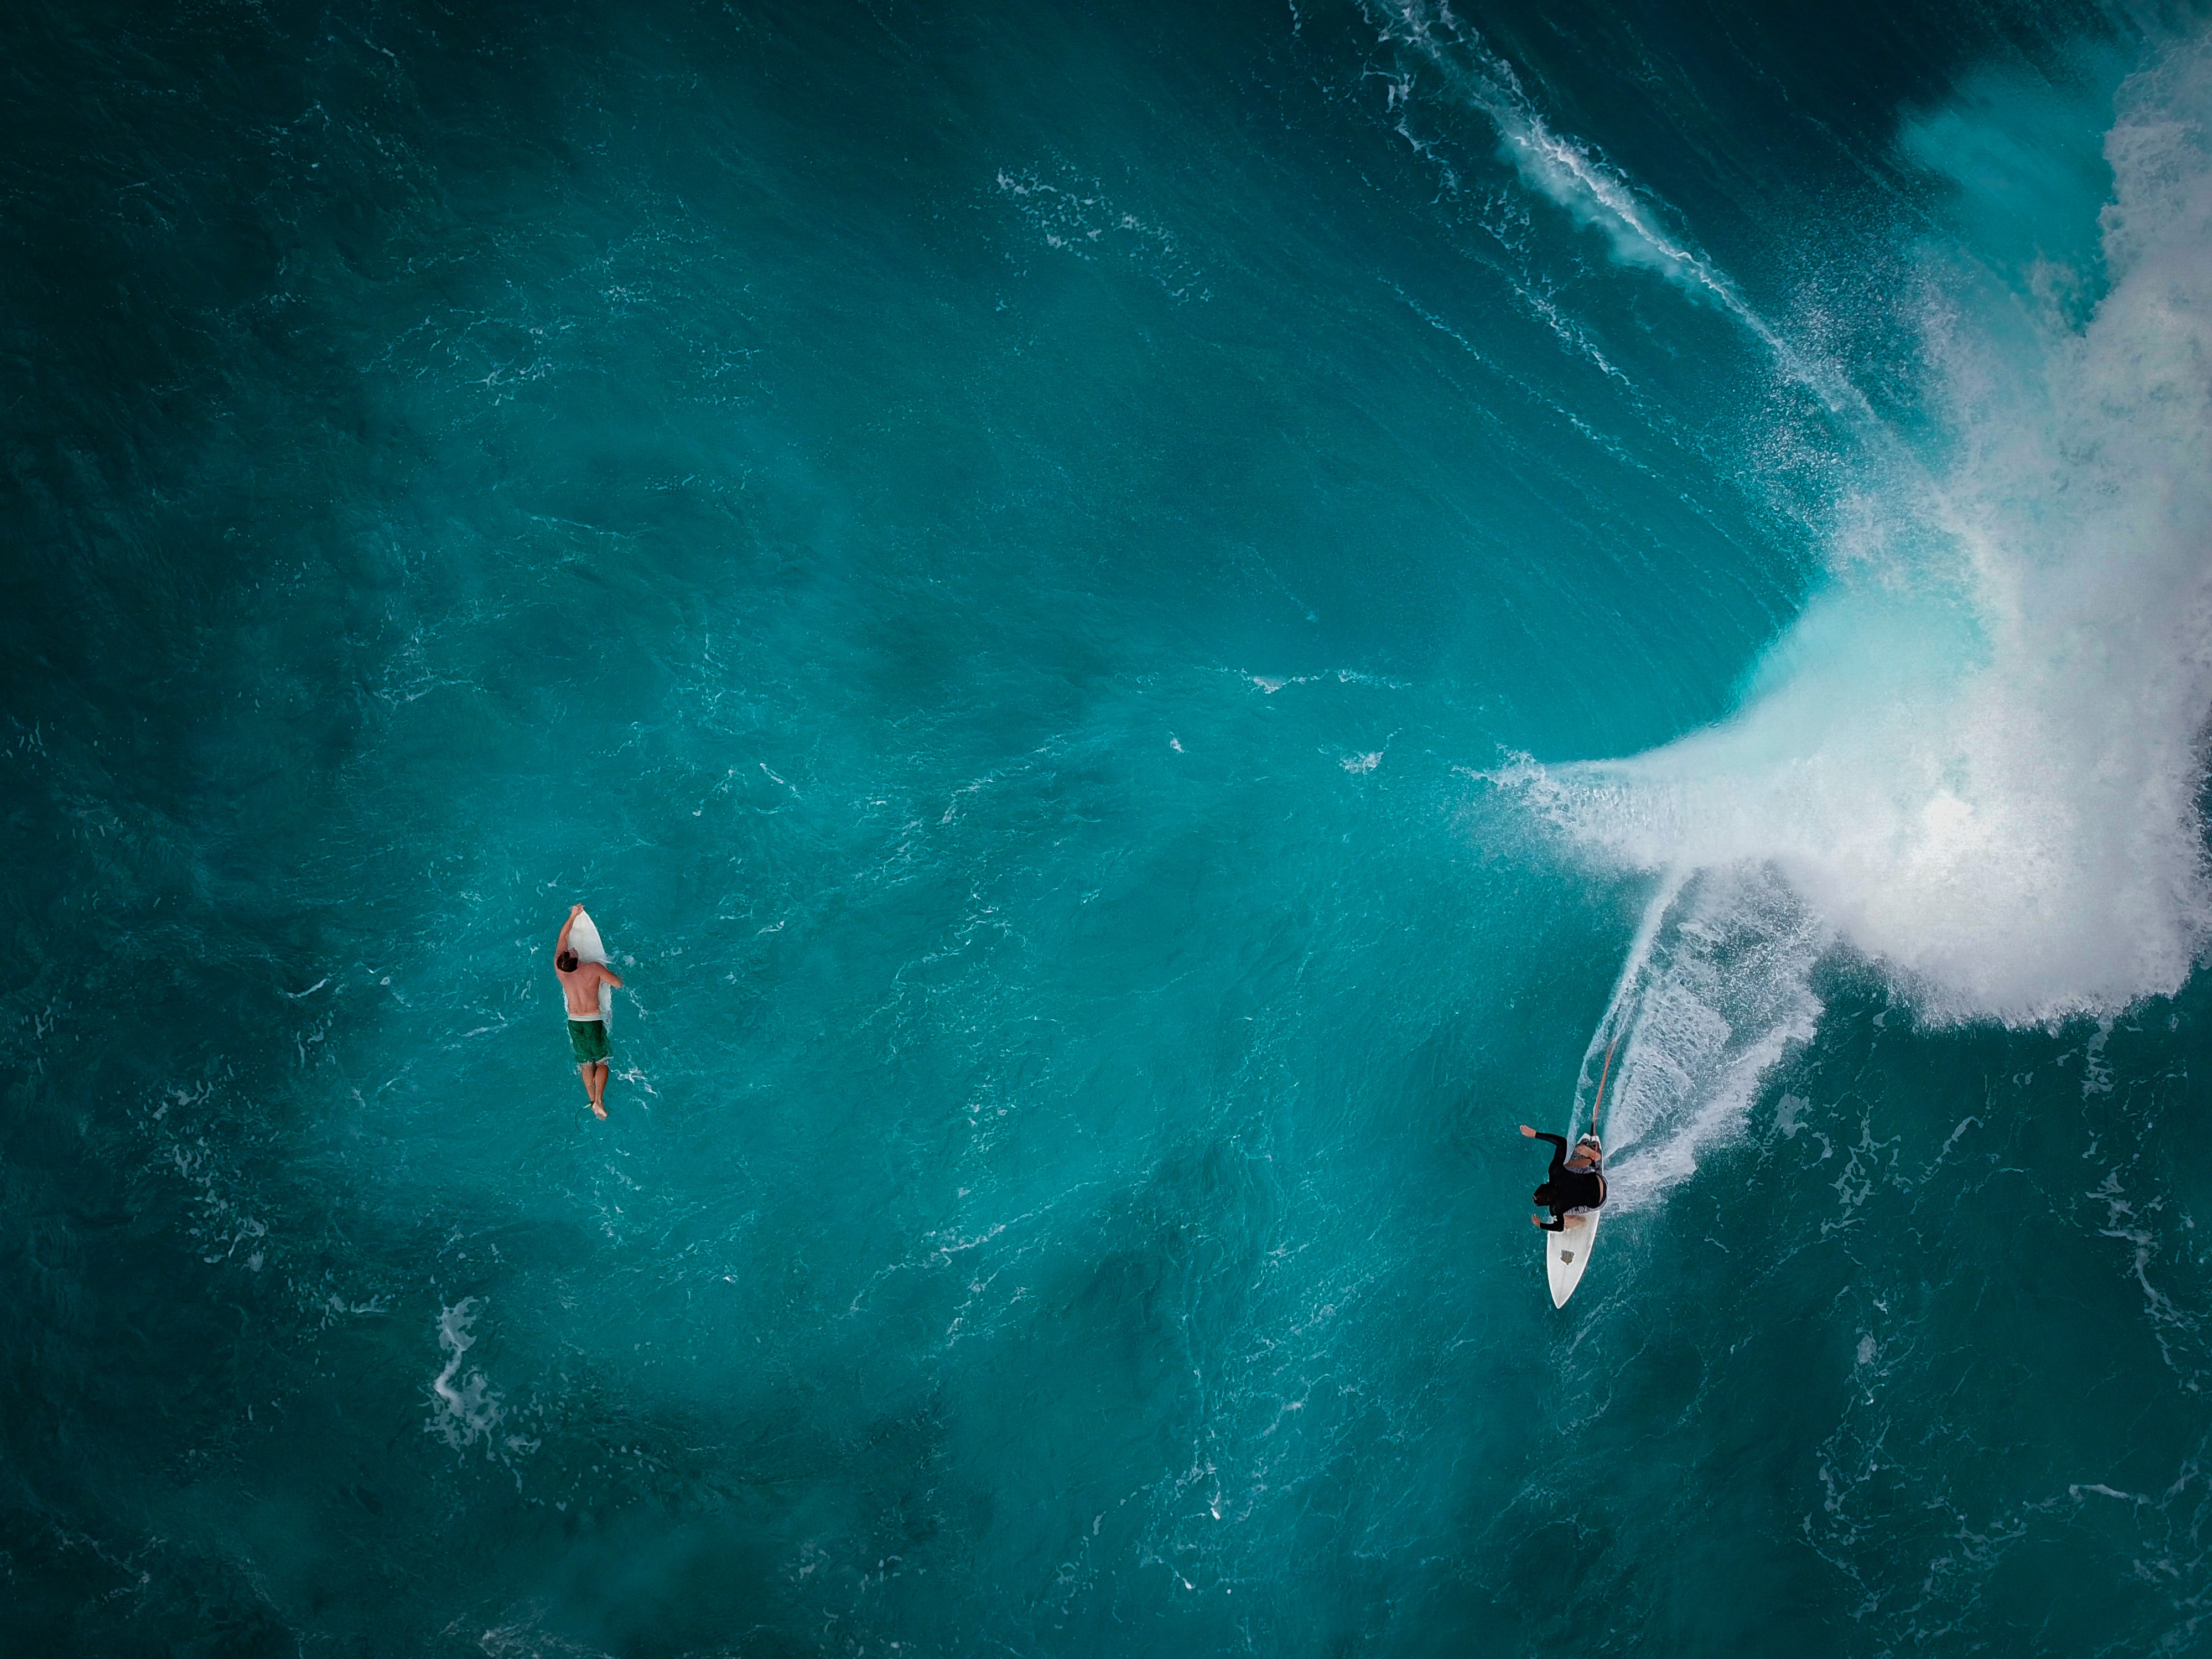 aerial photography of two persons surfing